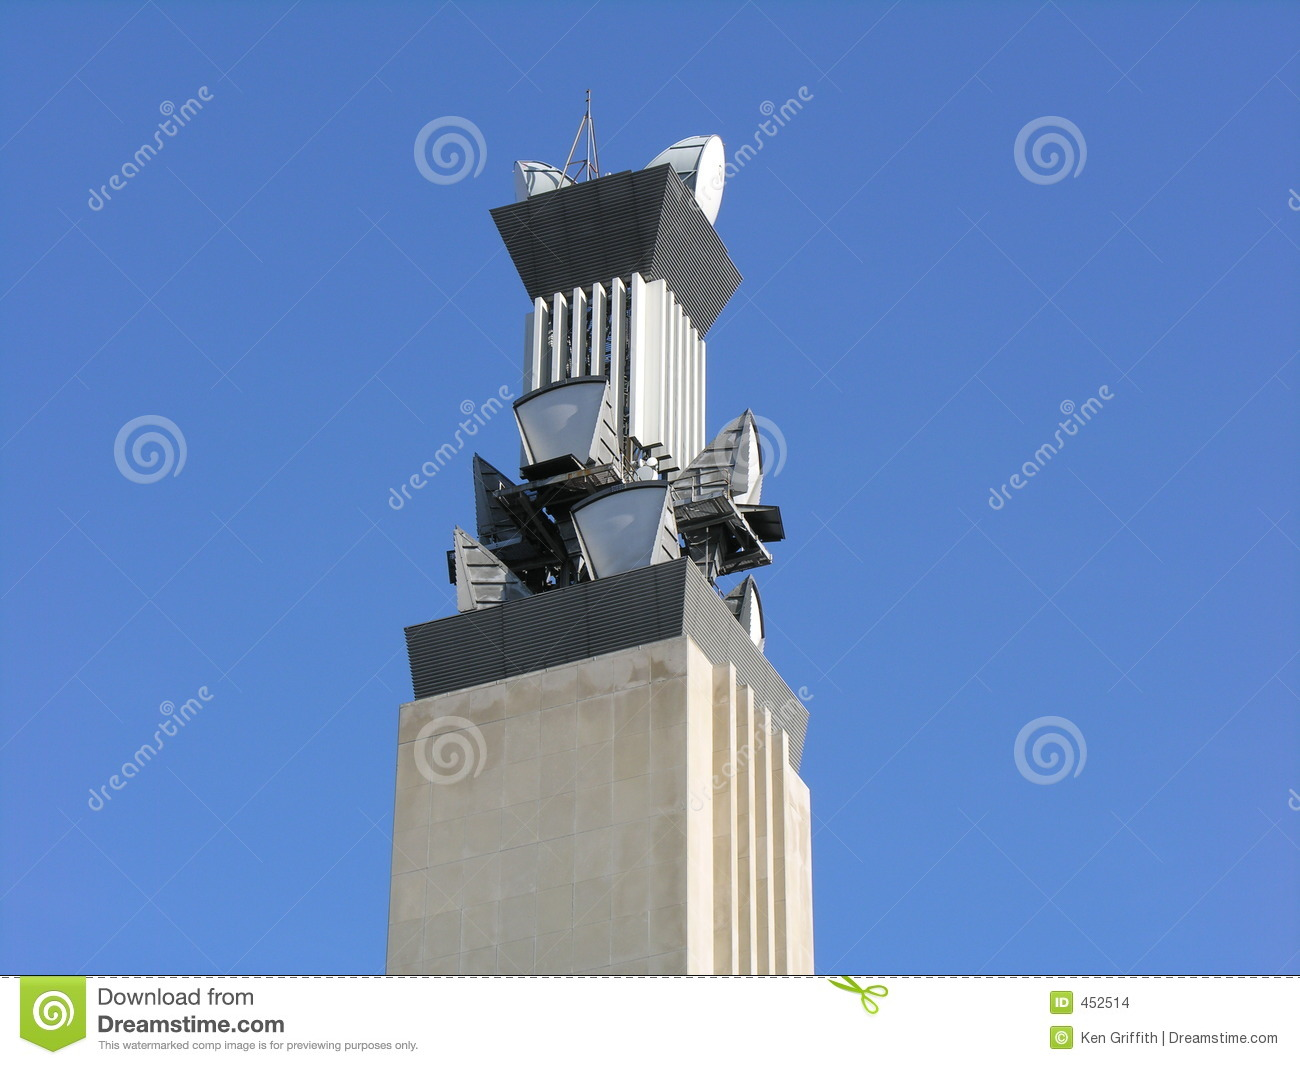 Download Telecom Tower stock photo. Image of send, microwave, blue - 452514